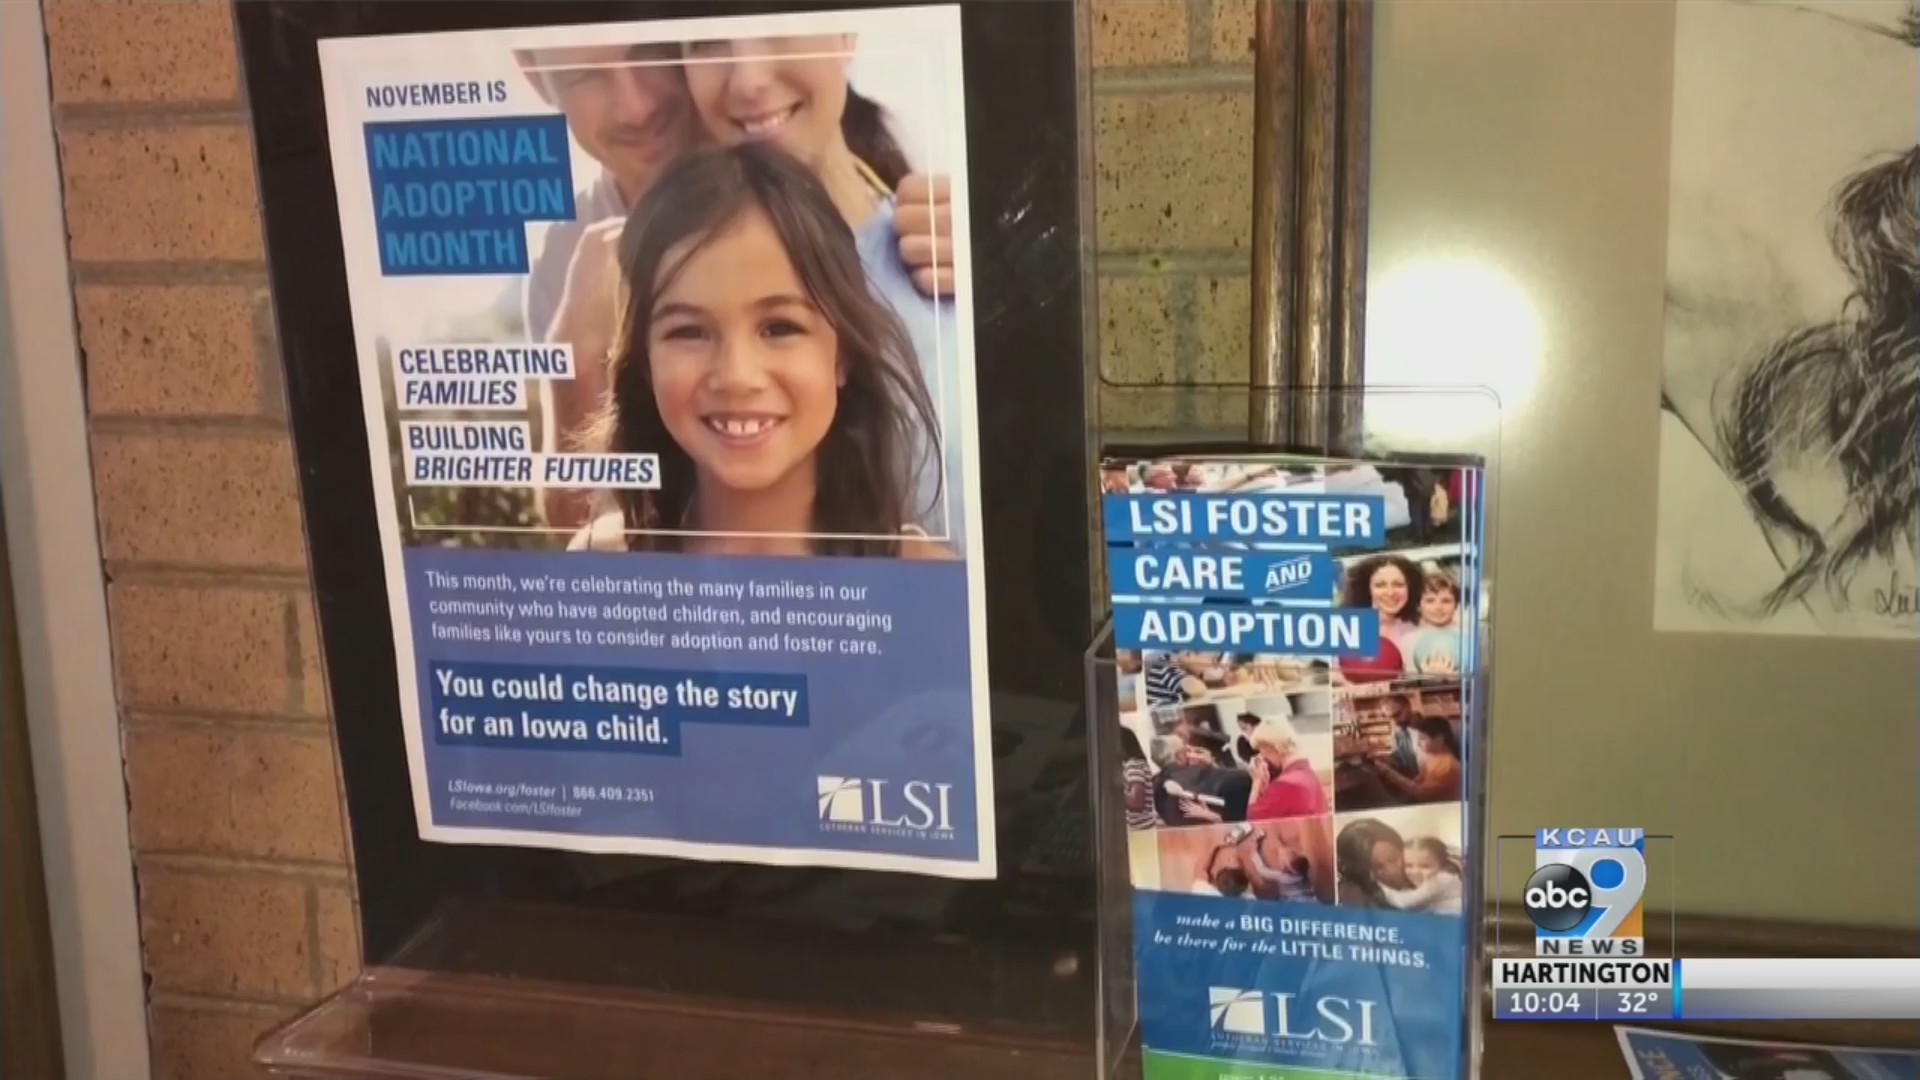 Foster parent orientation looks to fill growing need in Siouxland